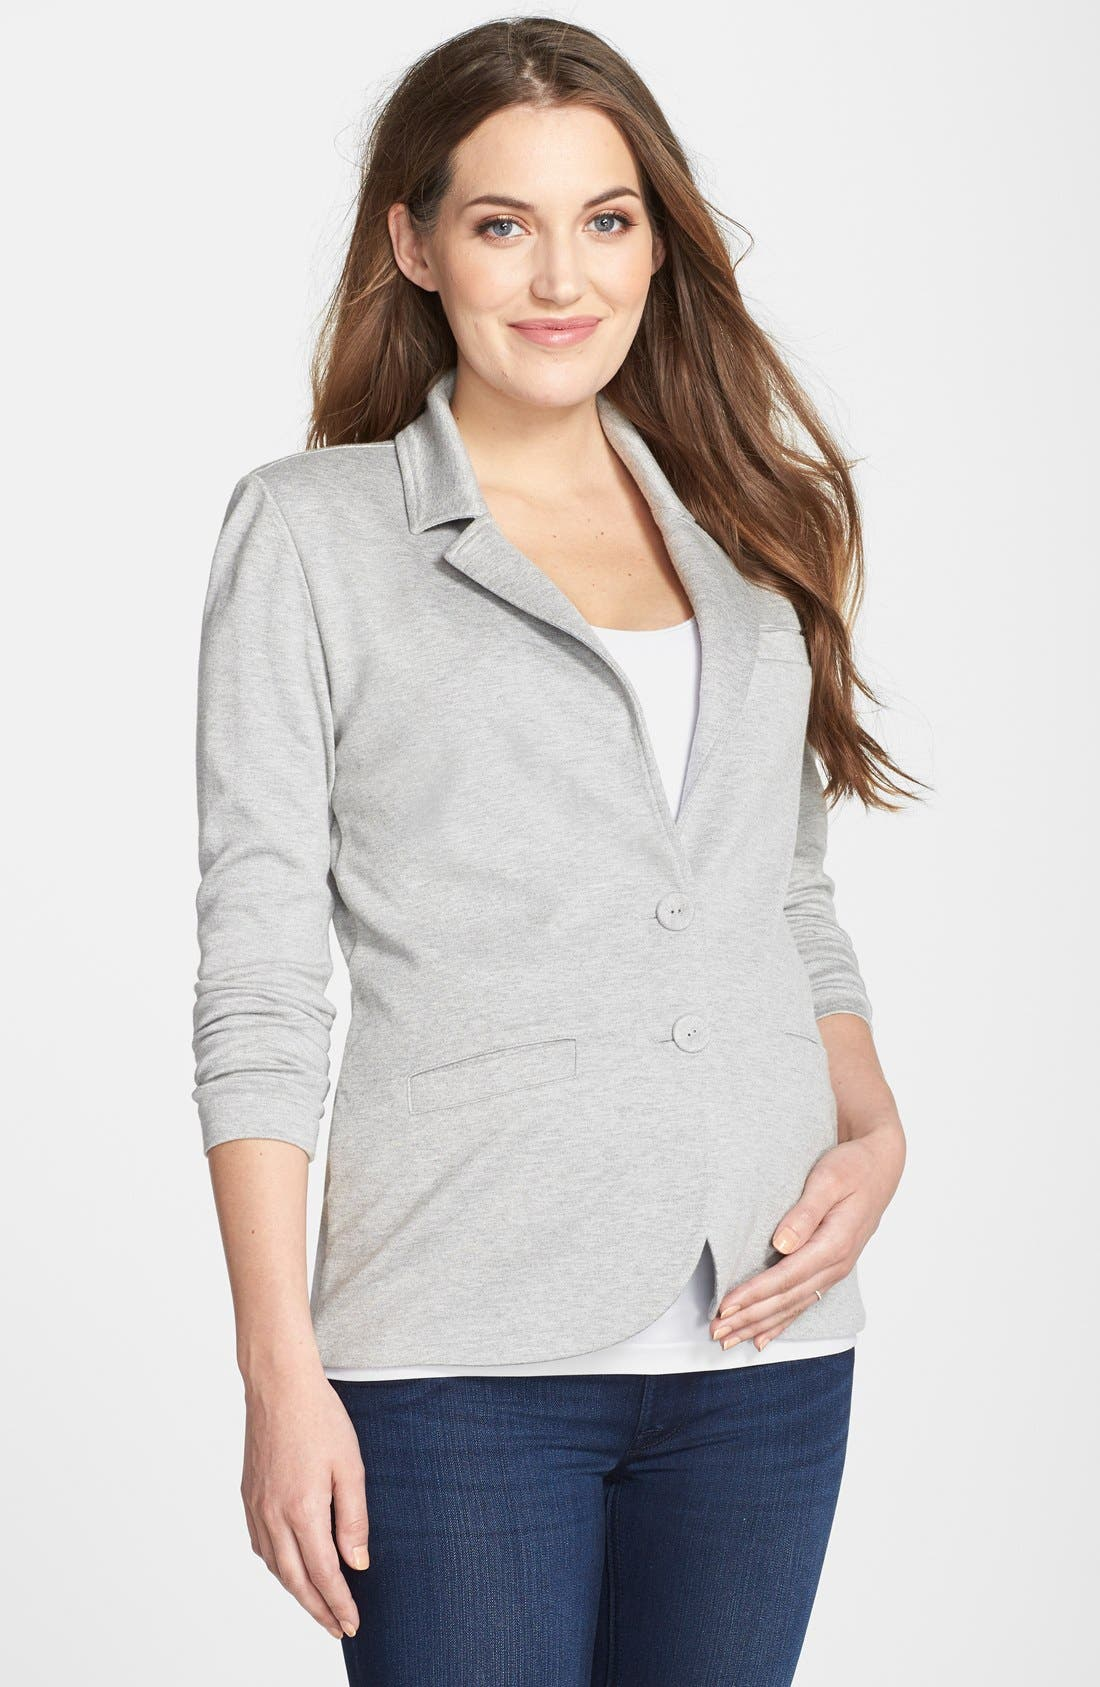 Essential Maternity Blazer,                         Main,                         color, HEATHER GREY